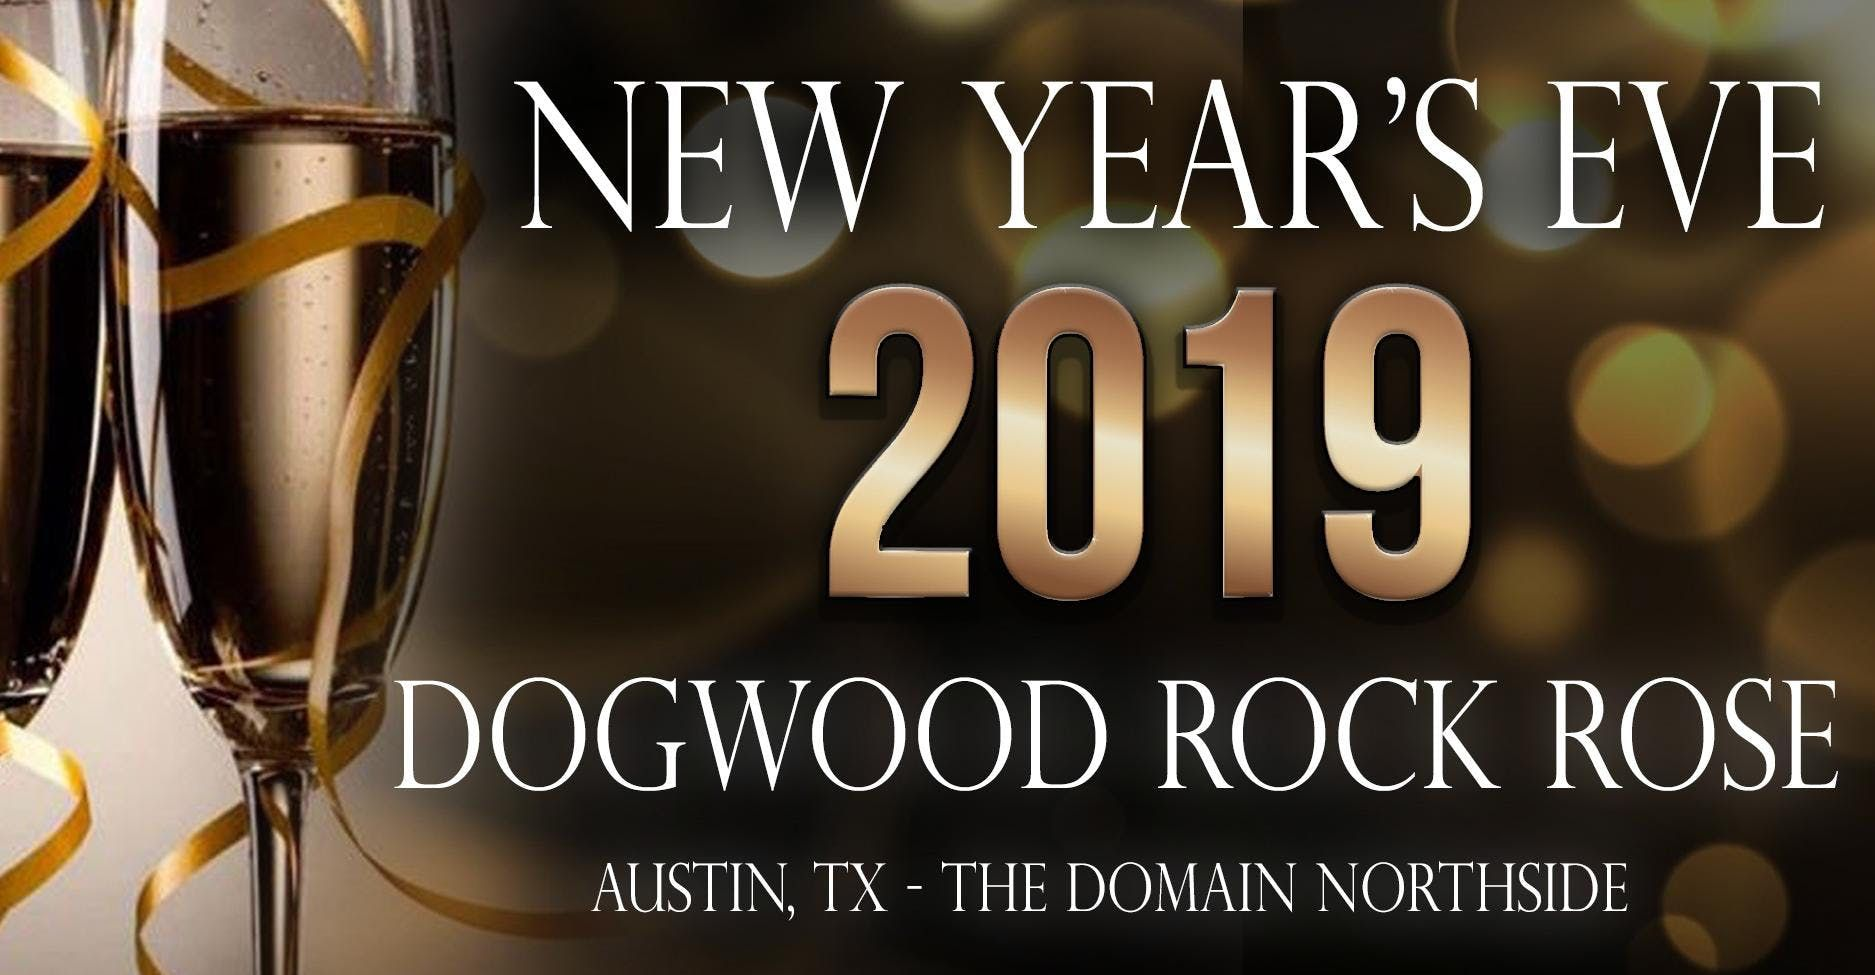 New Years Eve 2019 at The Dogwood ROCK ROSE in Domain Northside - AUSTIN TX